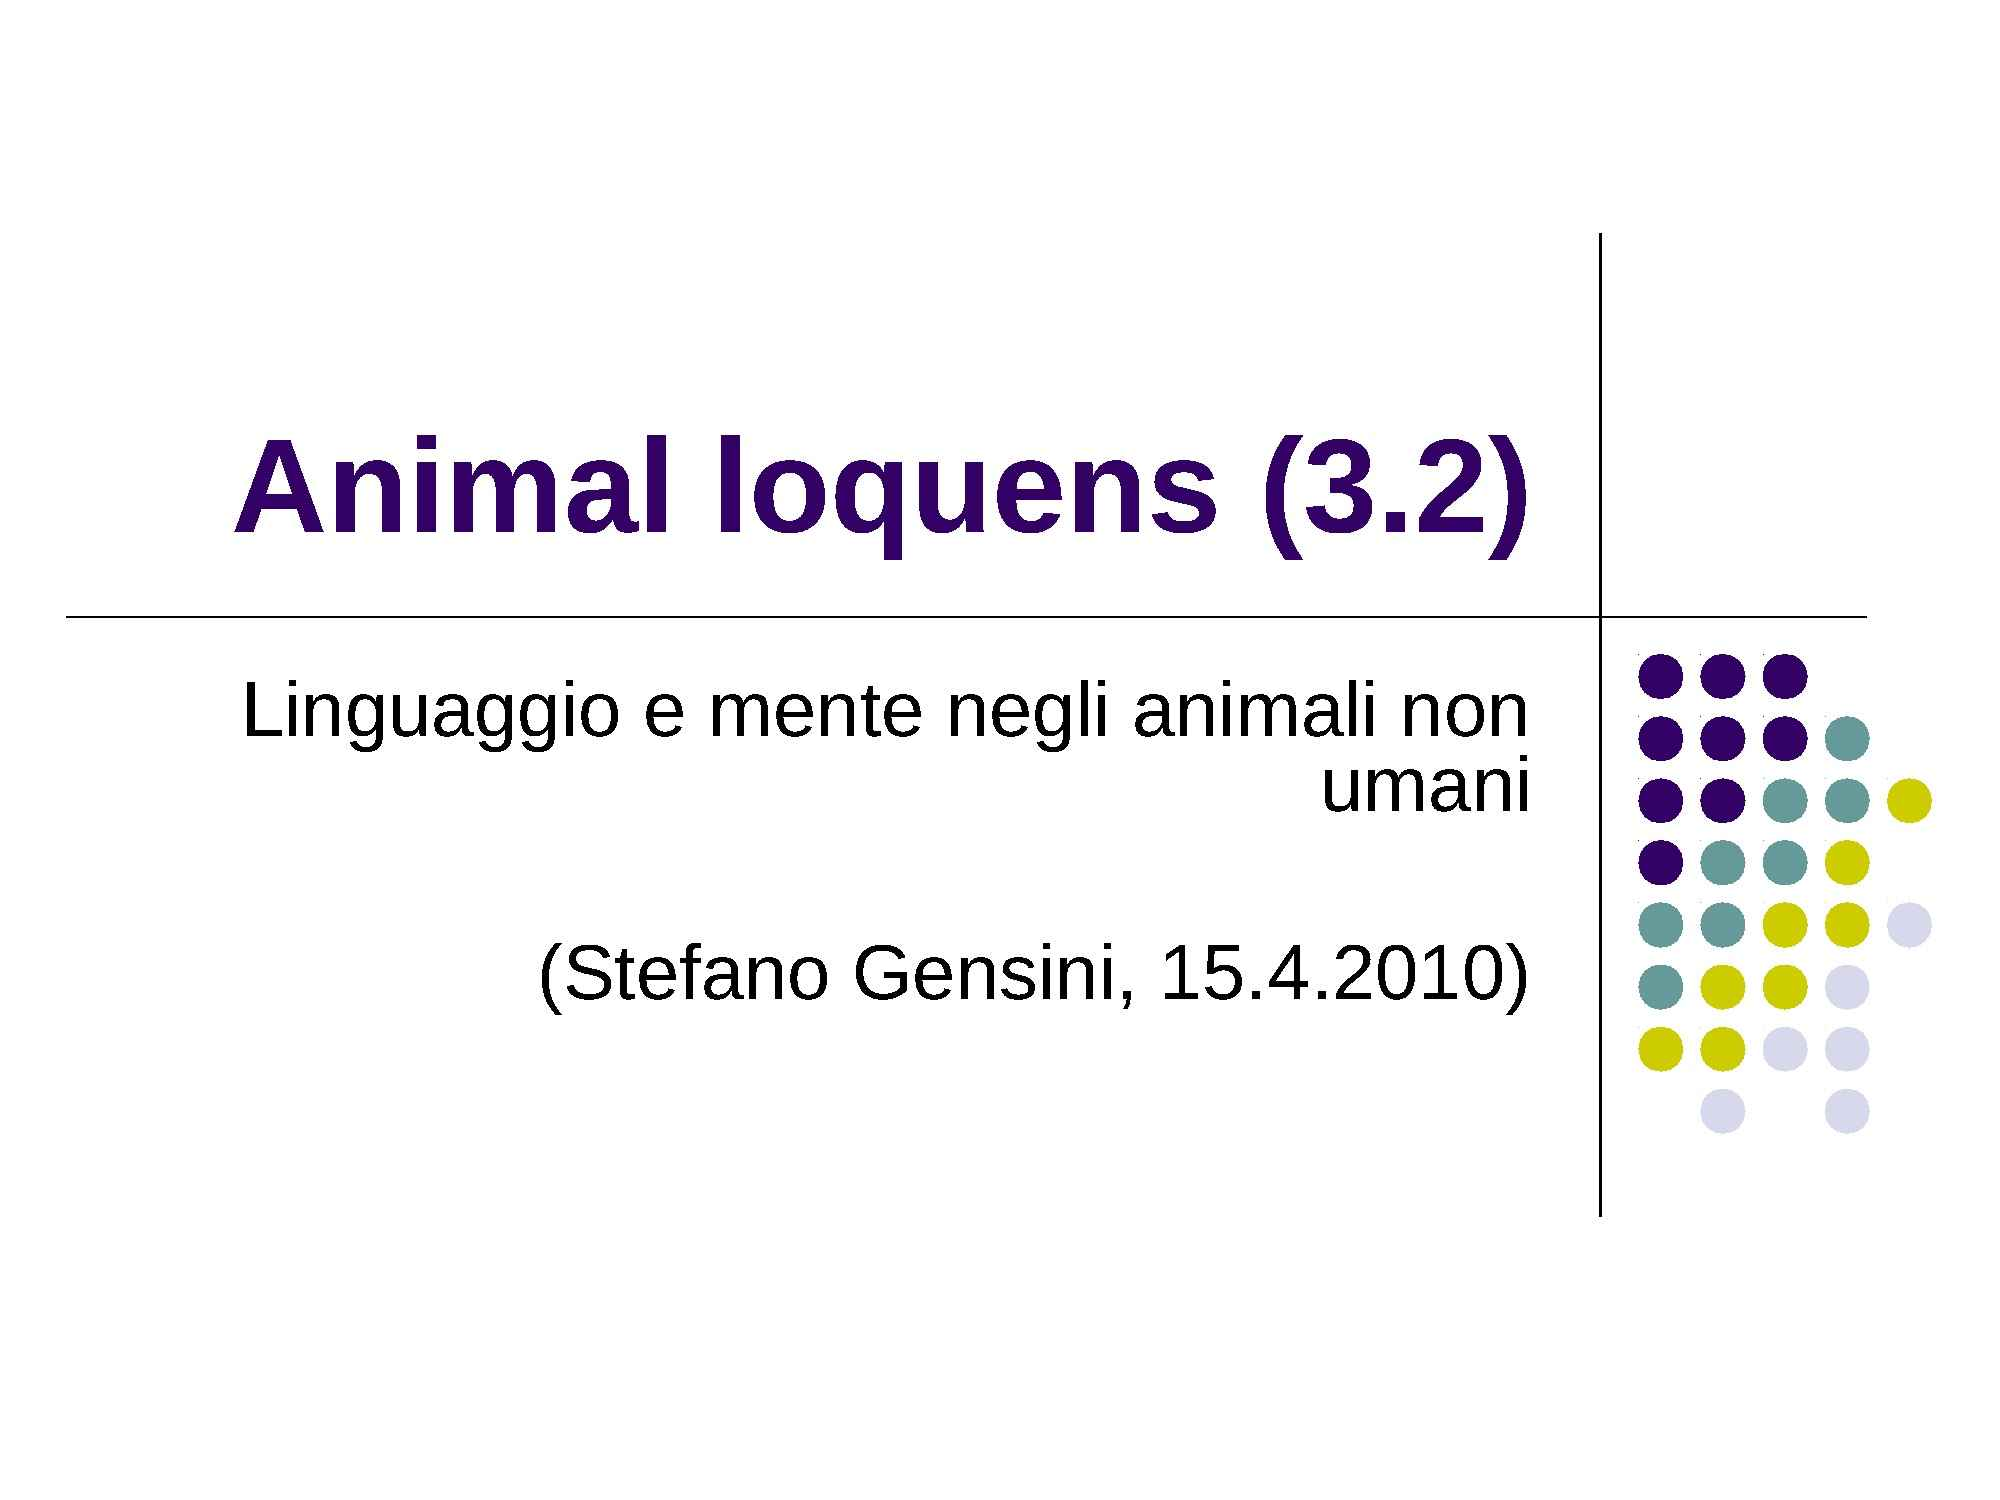 Animal loquens - Animali e comunicazione